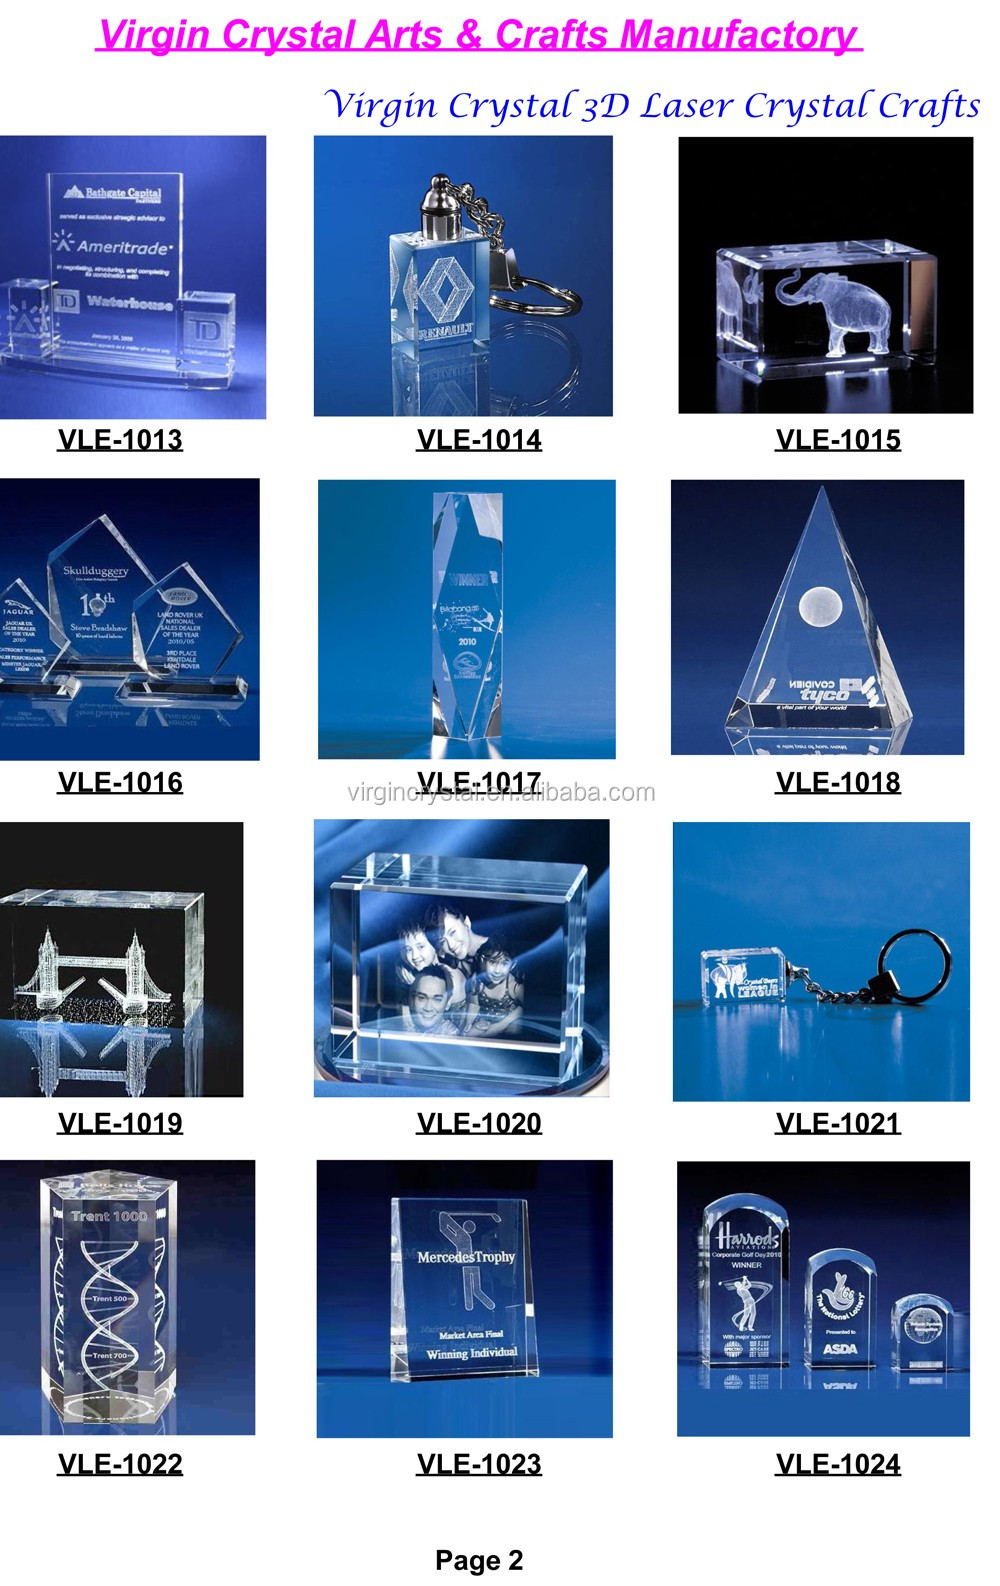 2016 3D Laser Engraving Crystal Gifts Catalog-2.jpg